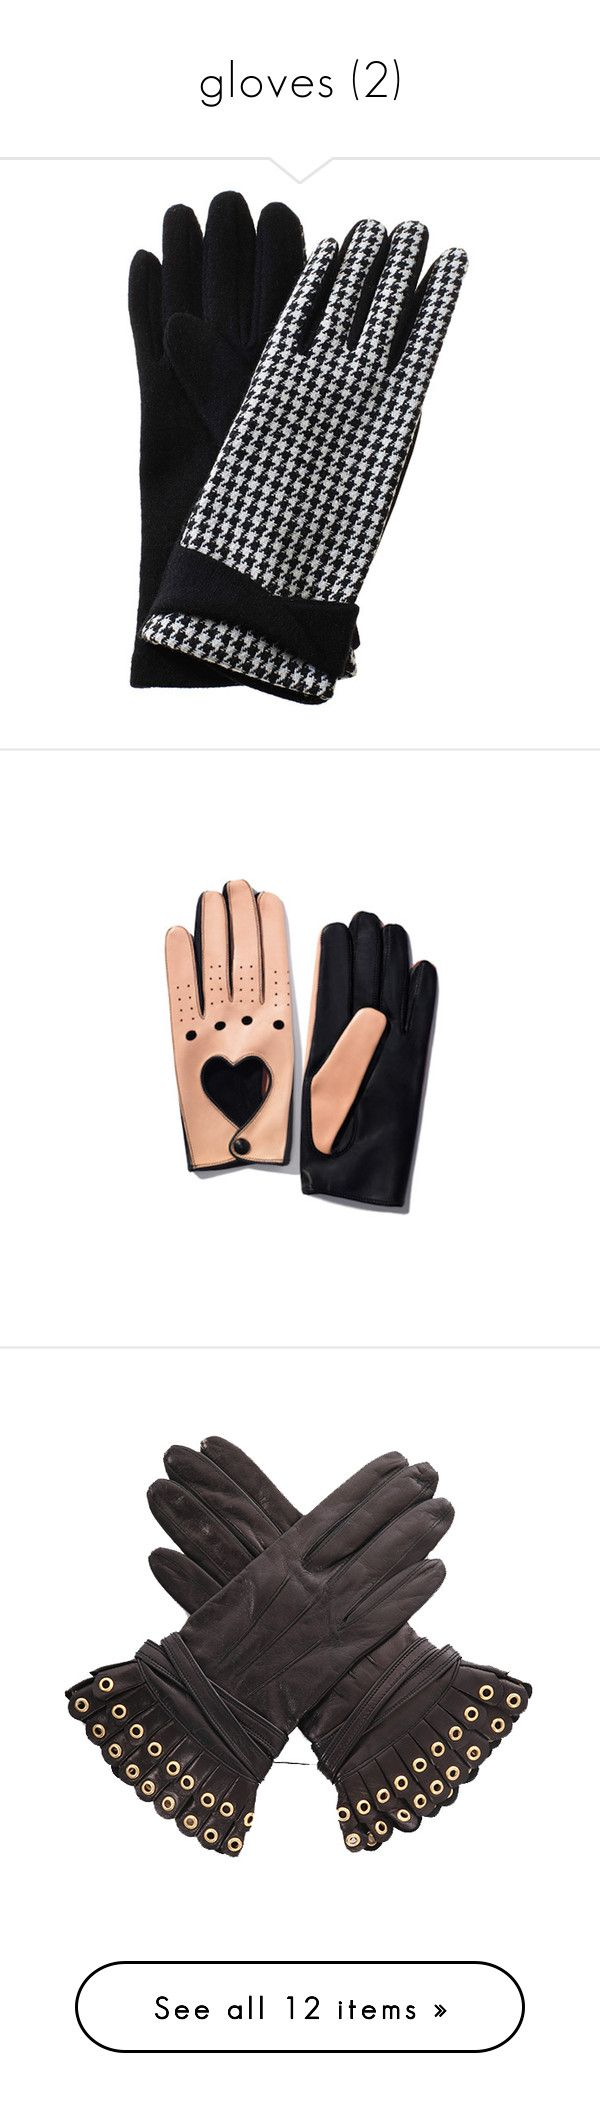 Driving gloves for arthritic hands -  Gloves 2 By Bonadea007 Liked On Polyvore Featuring Gloves Accessories